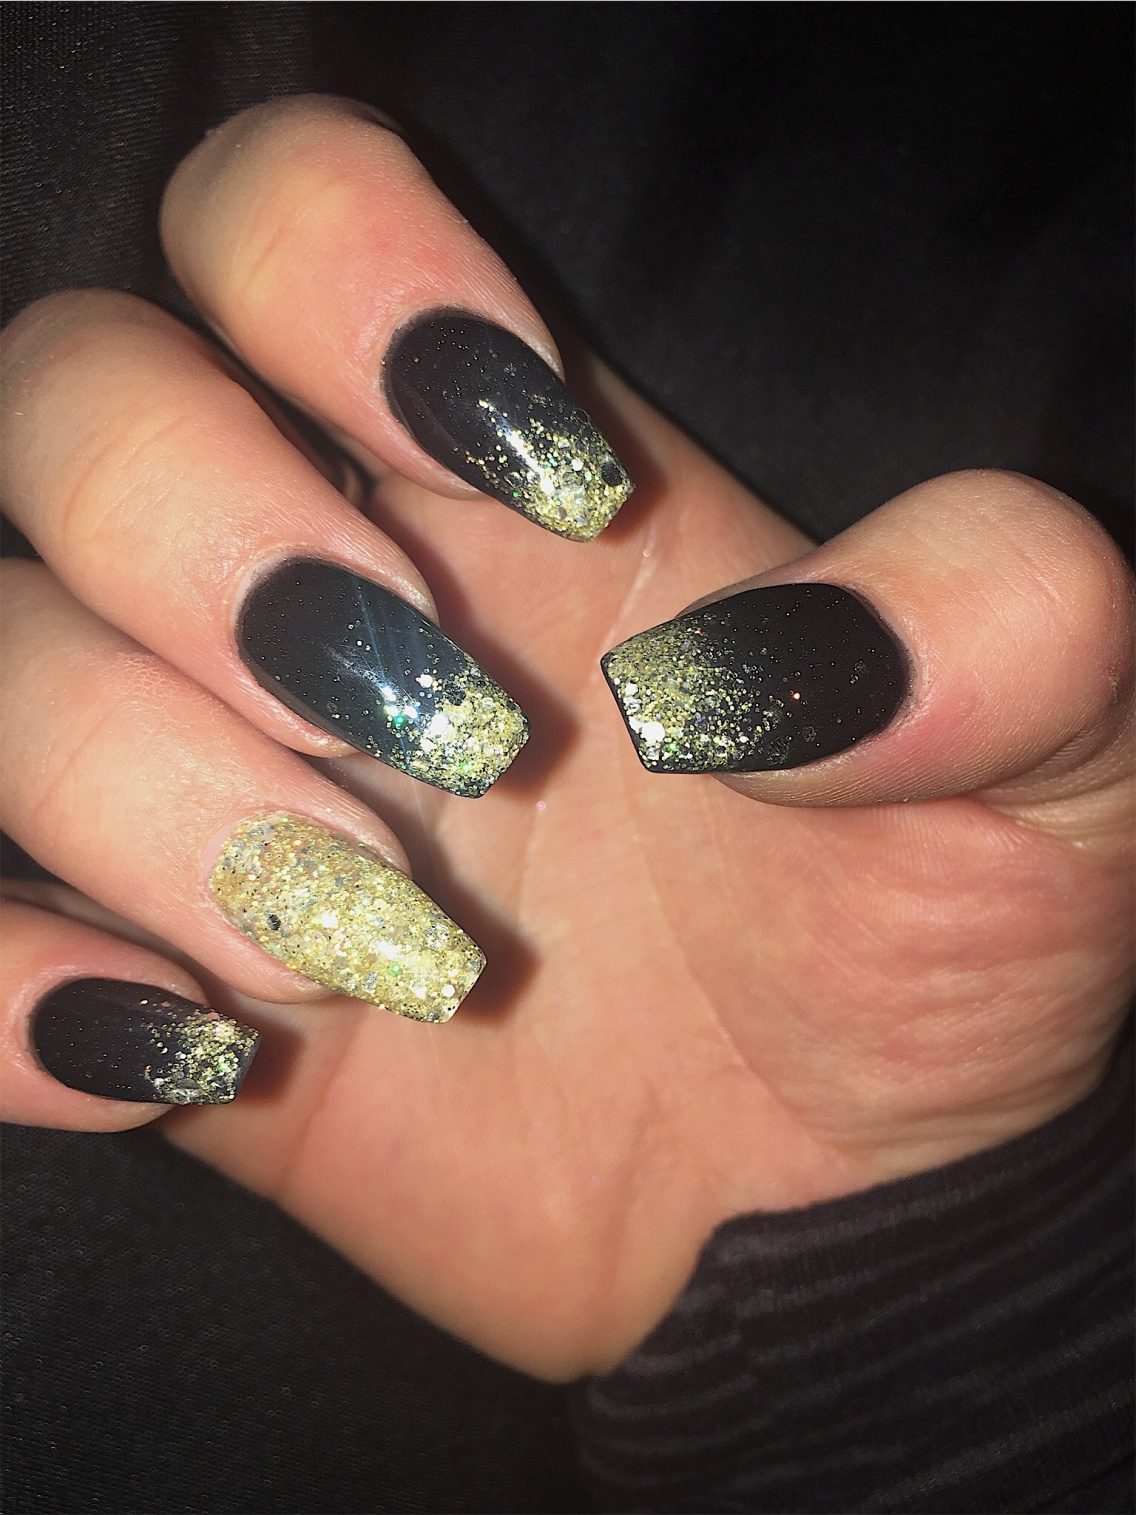 new years nails taylor fraser vsco new years nails taylor fraser vsco